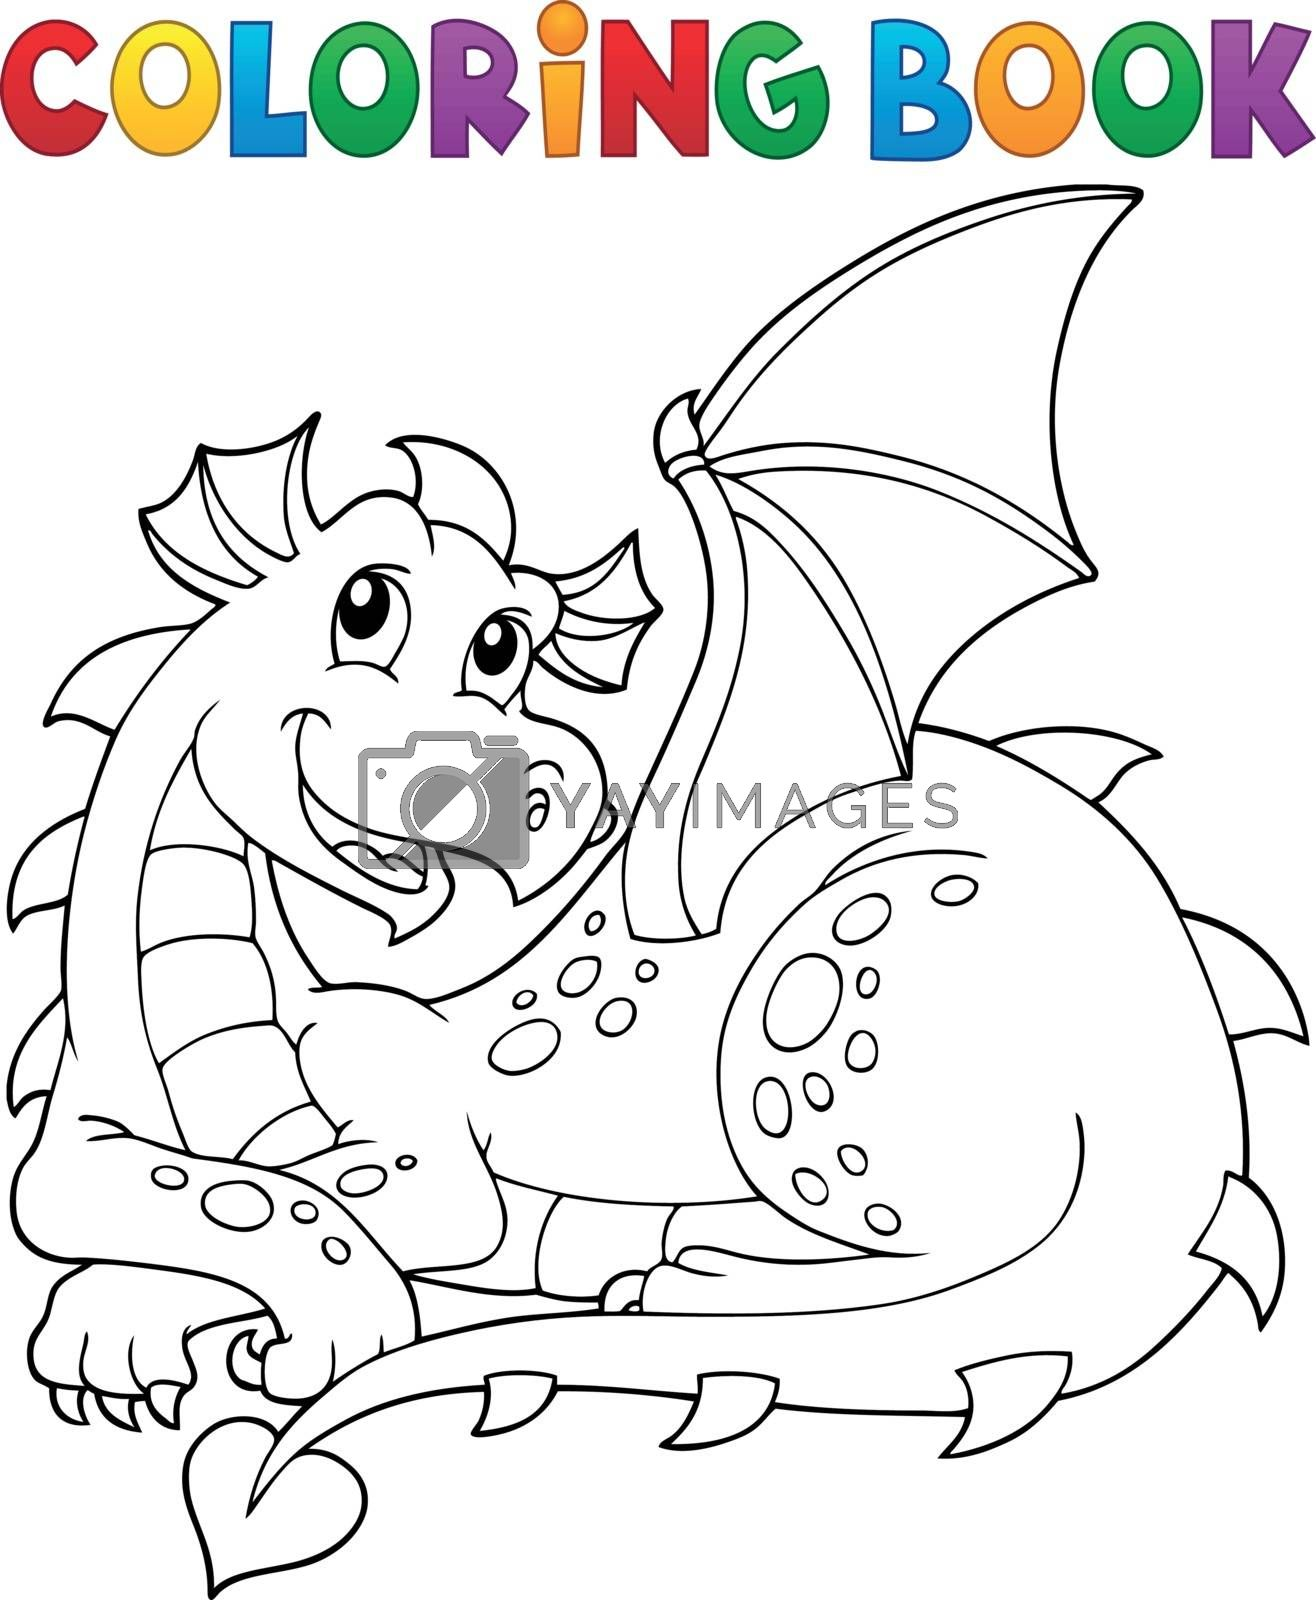 Coloring book lying dragon theme 1 - eps10 vector illustration.